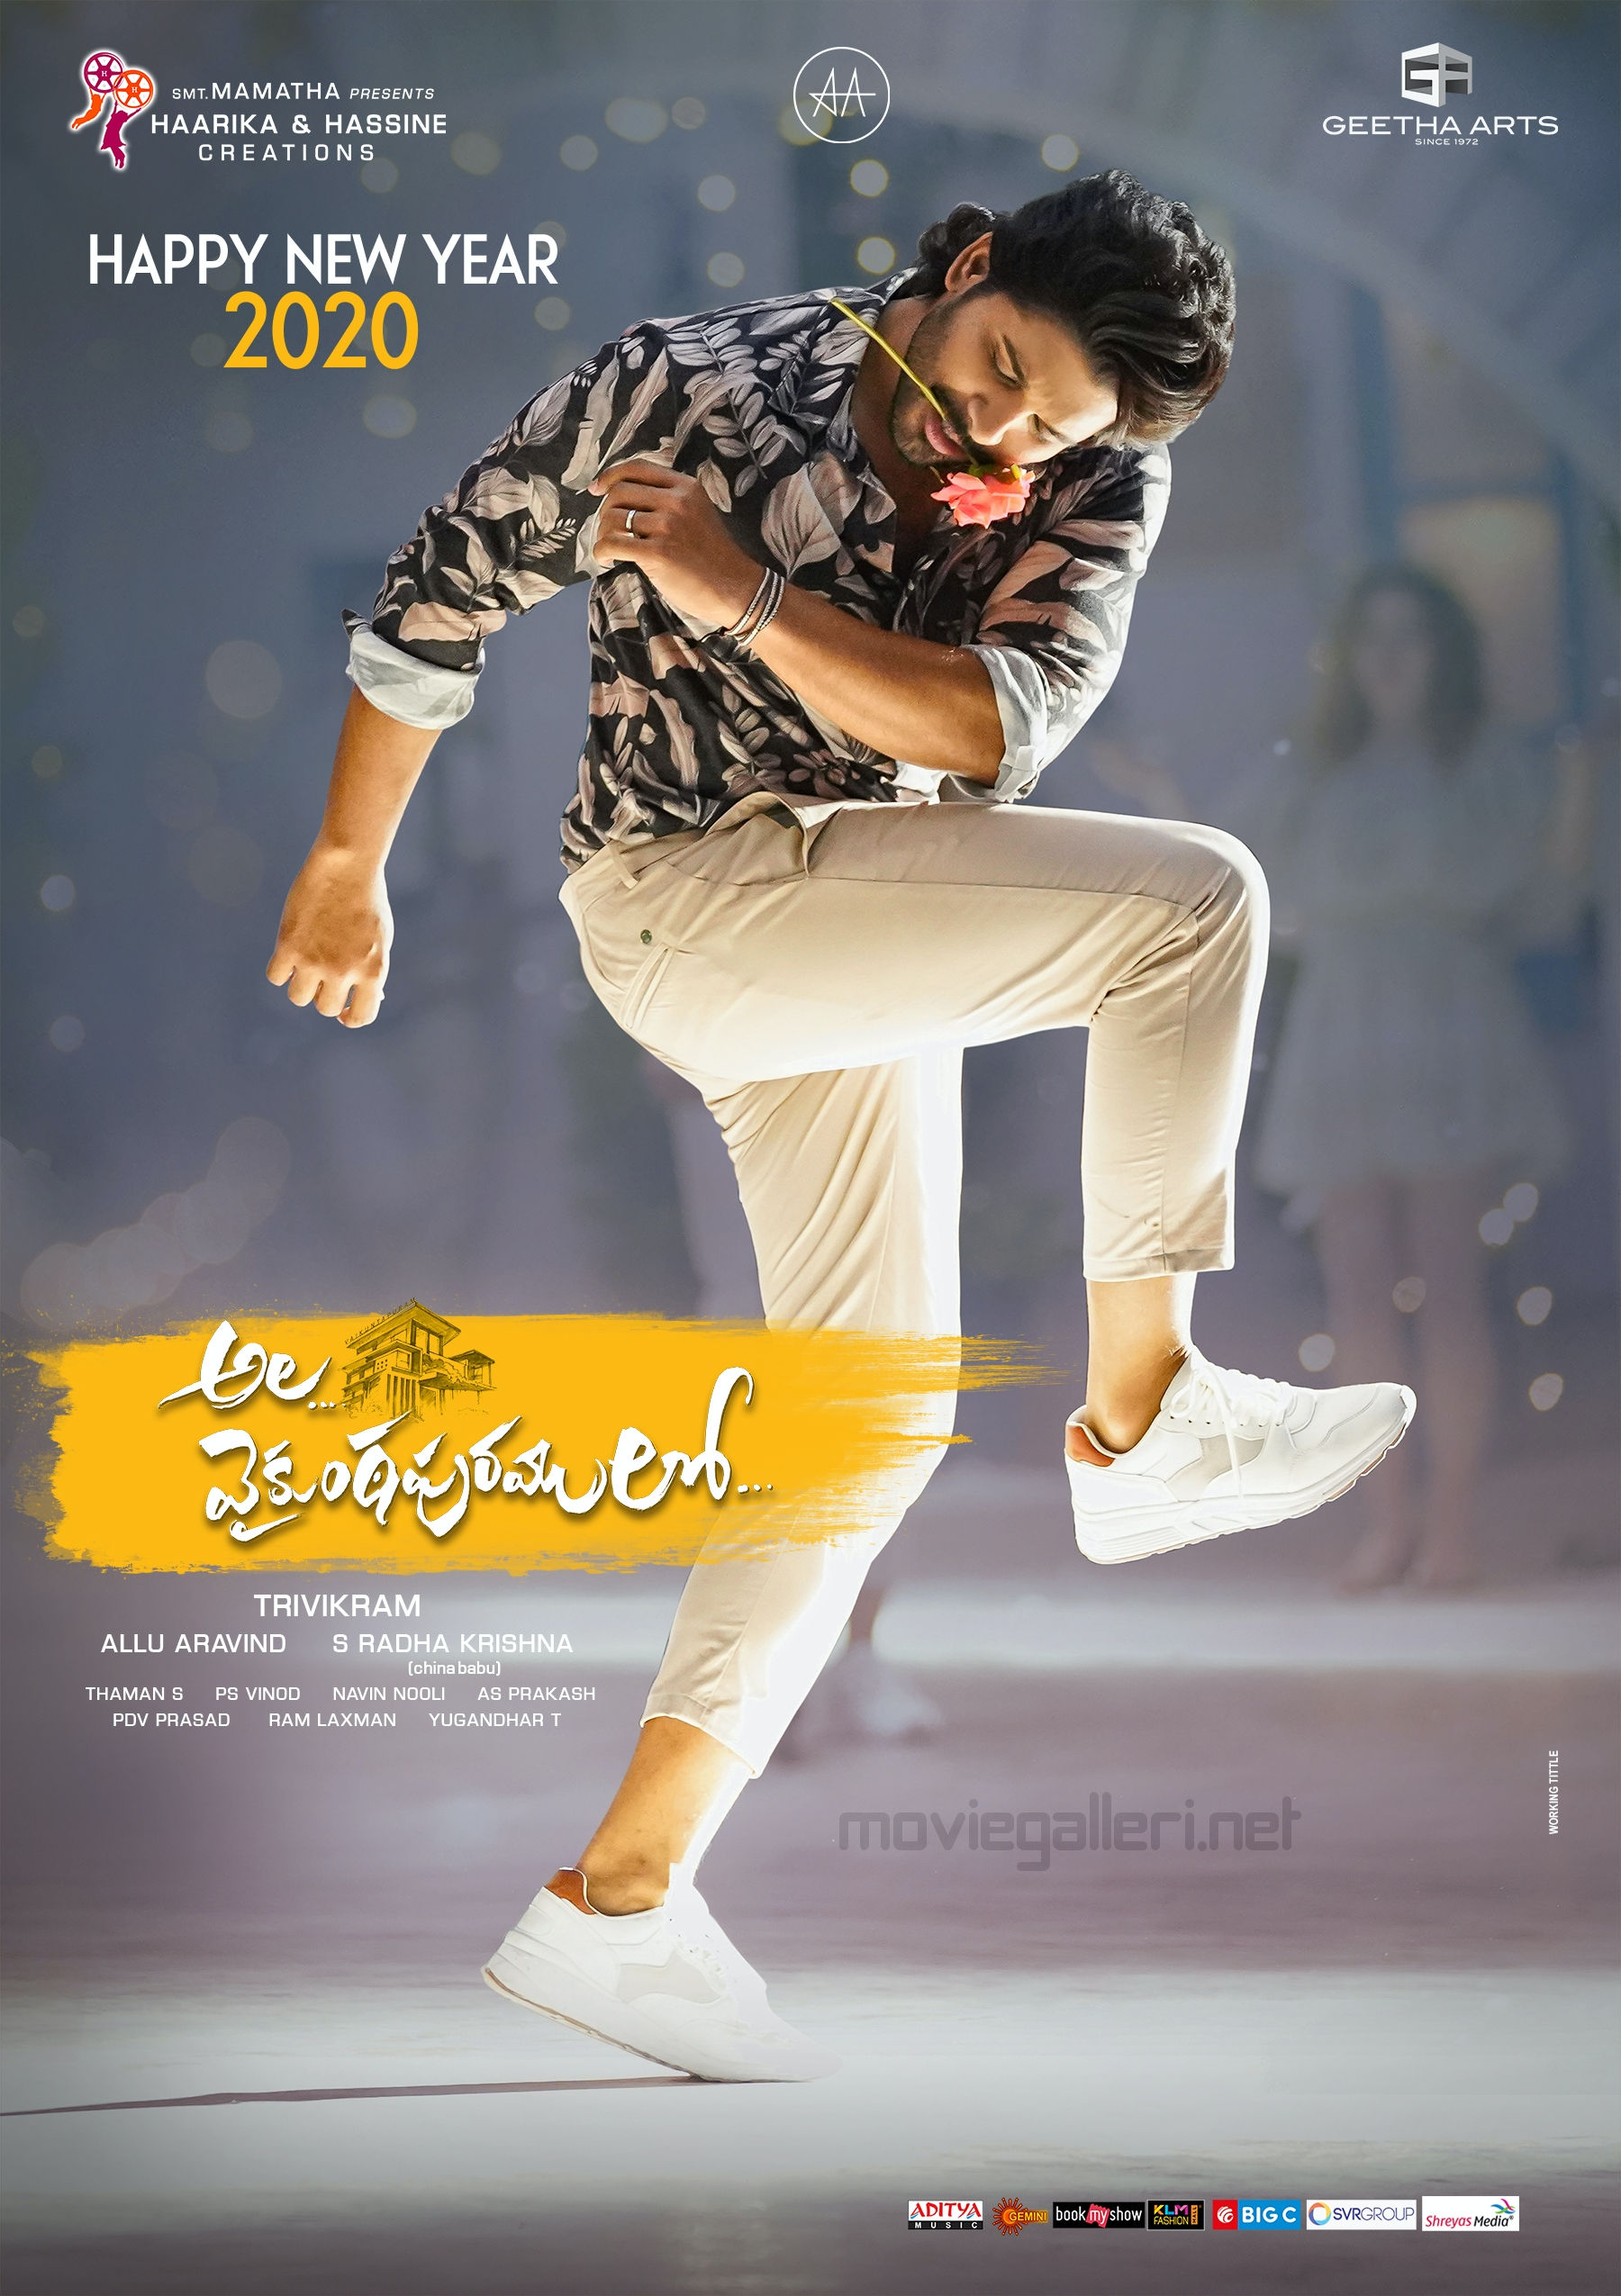 Allu Arjun Ala Vaikunta Puram Lo New Year 2020 Wishes Poster HD